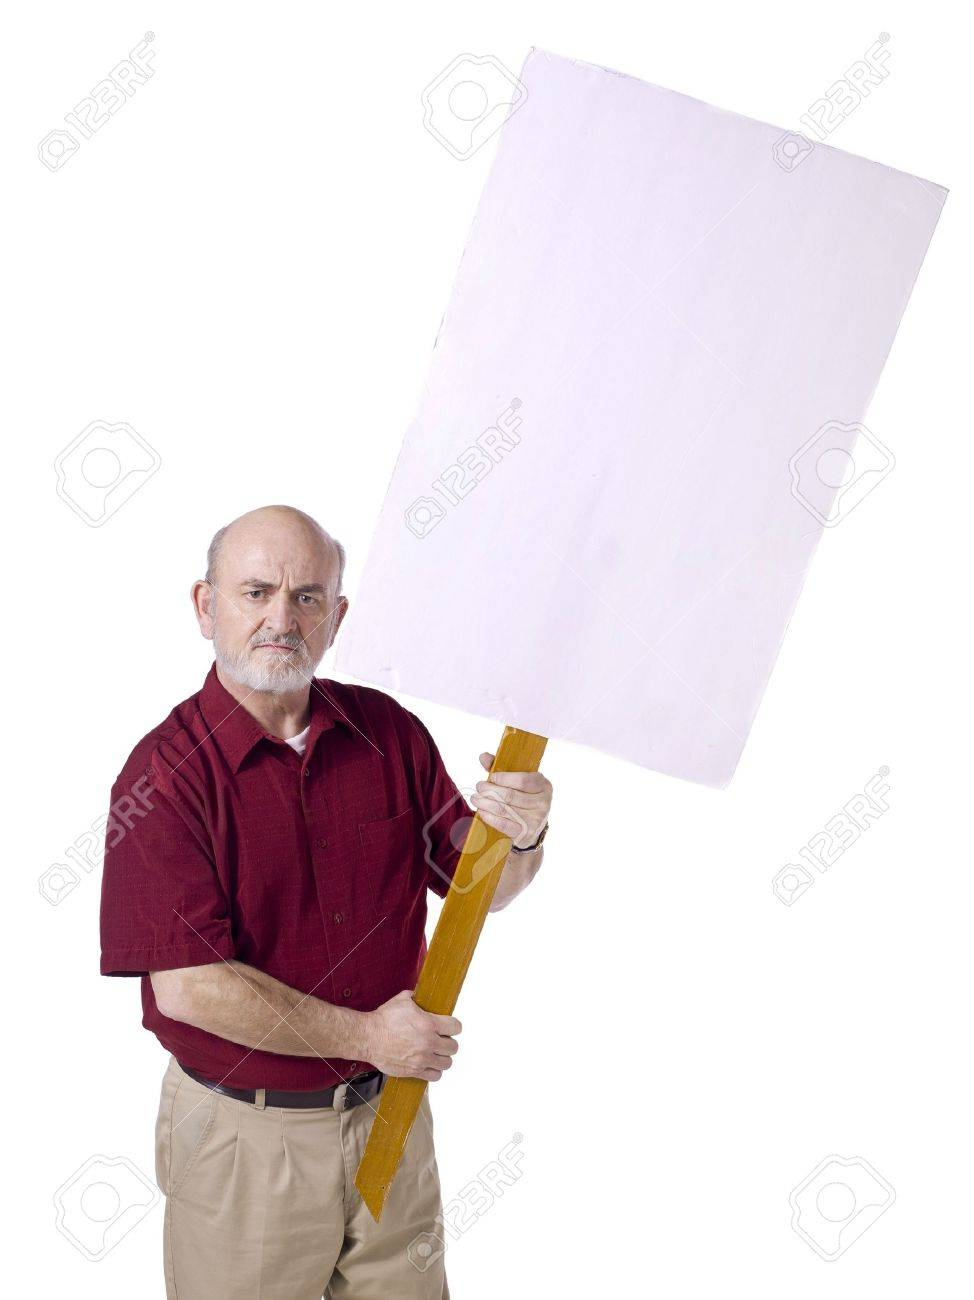 Image of old man with white protest banner against white background Stock Photo - 17135089